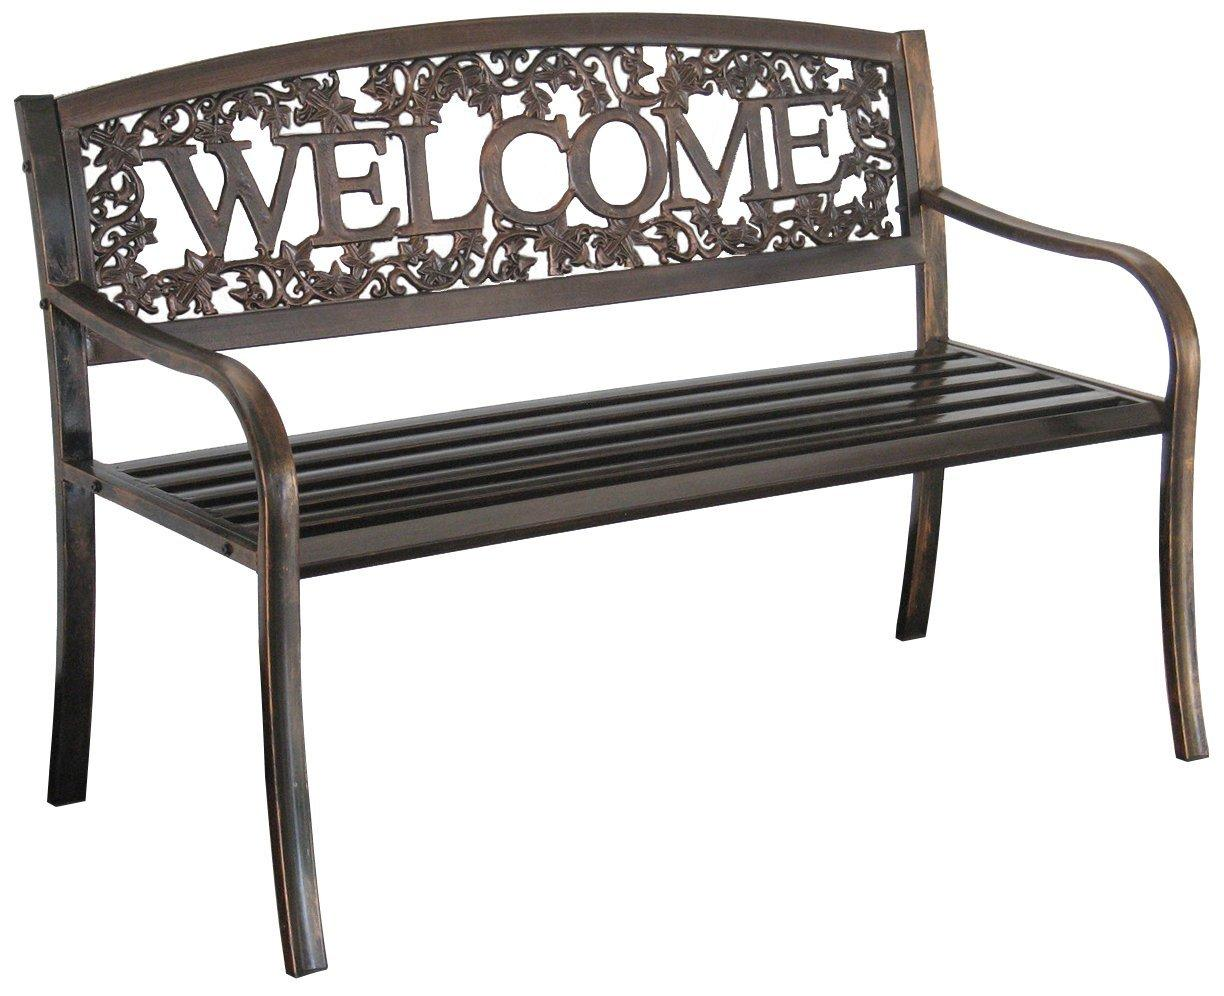 Leigh Country, Bench, Weclome, Front Porch, Yard, Ivy, Powder Coated